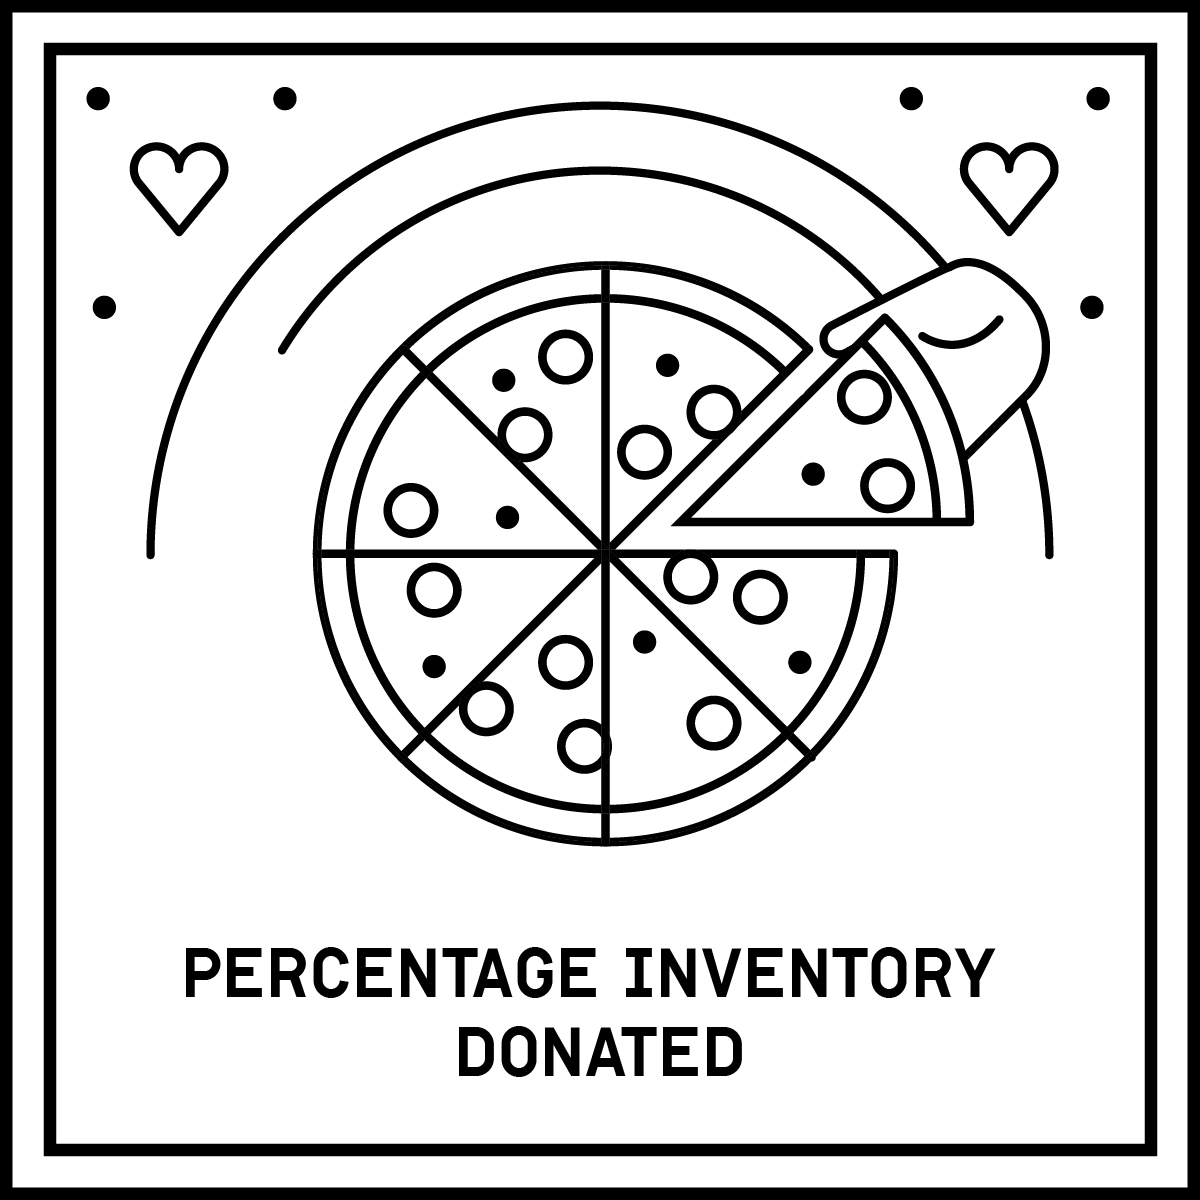 A model in which businesses dedicate a set percentage of